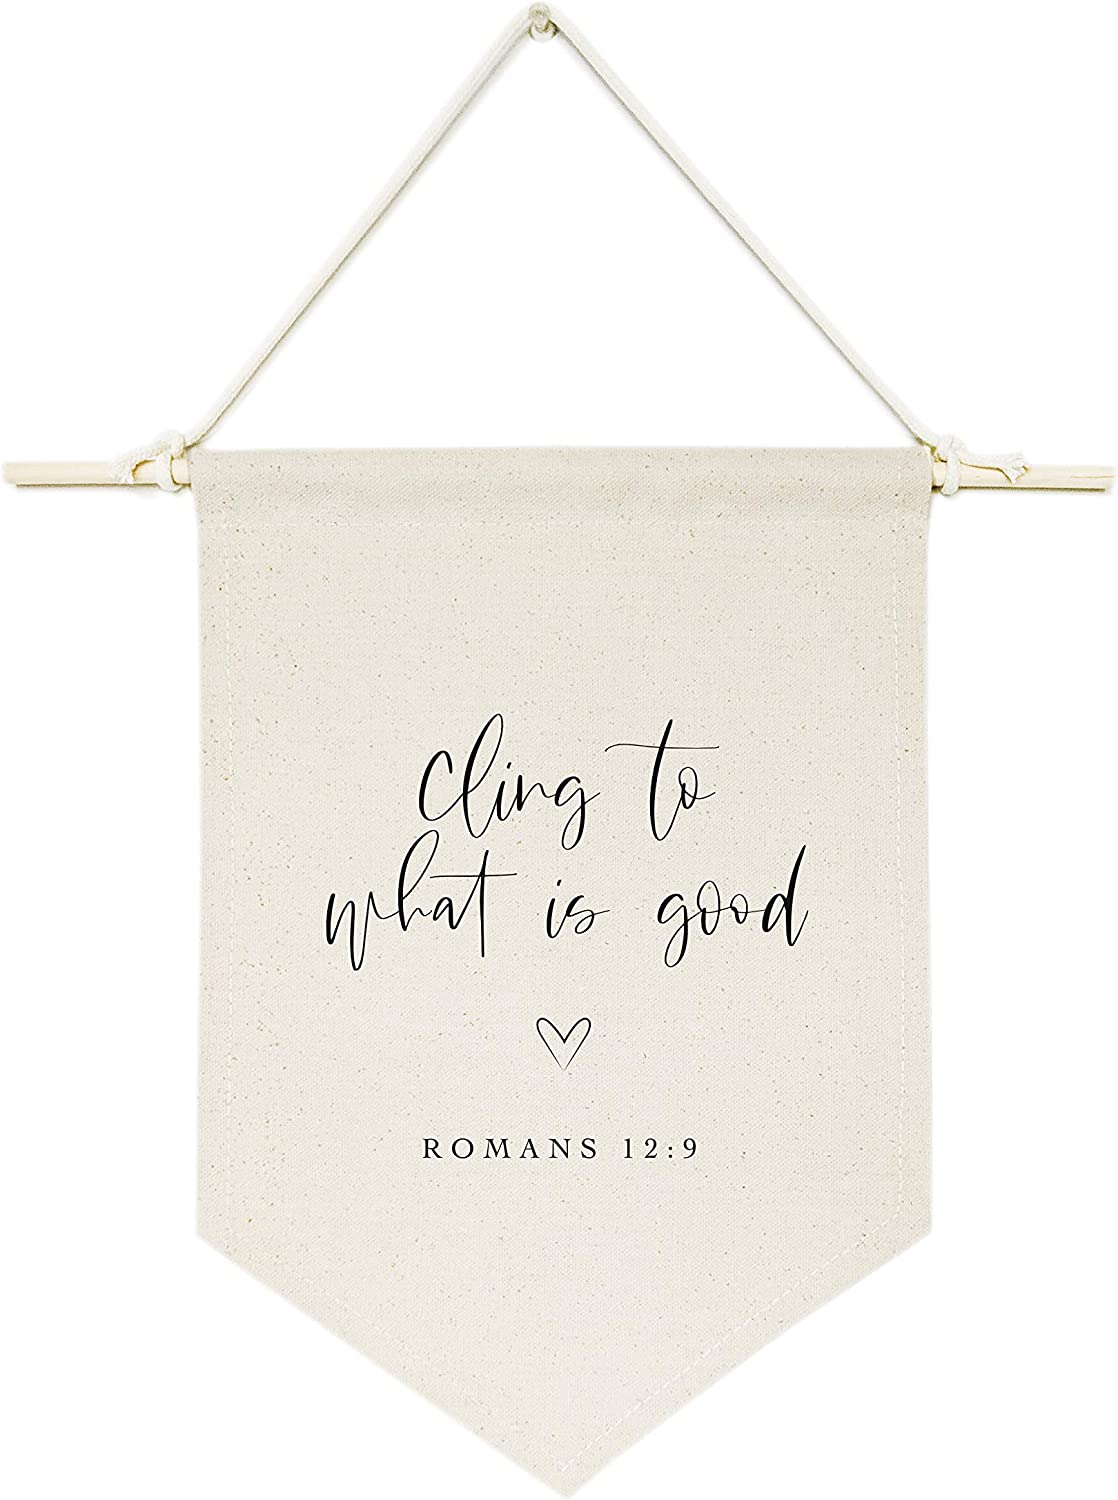 The Cotton & Canvas Co. Cling to What is Good, Romans 12:9 Bible Verse, Religious, Scripture Hanging Wall Canvas Banner